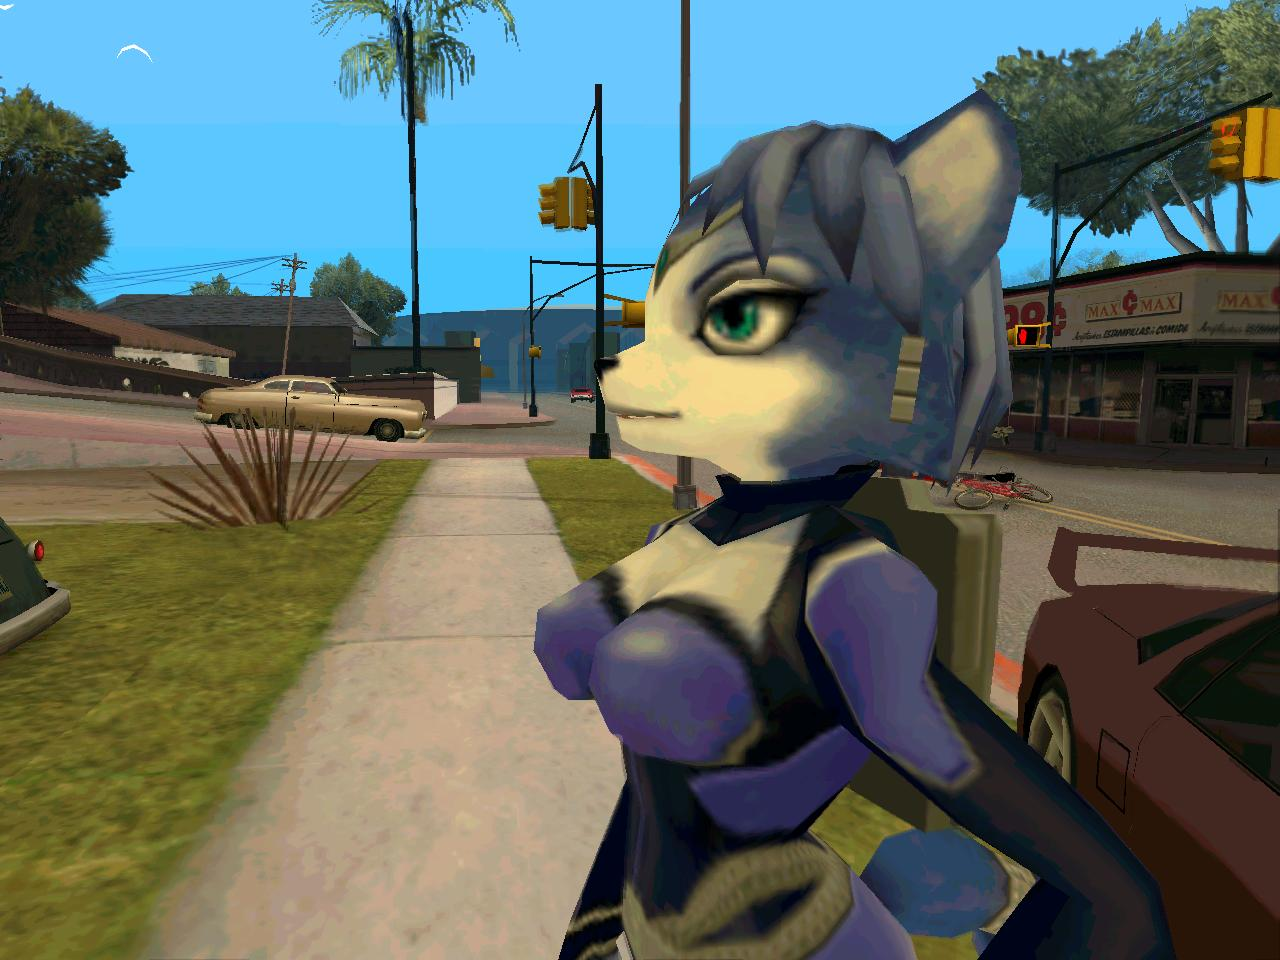 Gta San Andreas Images Star Fox Mods Hd Wallpaper And Background Photos